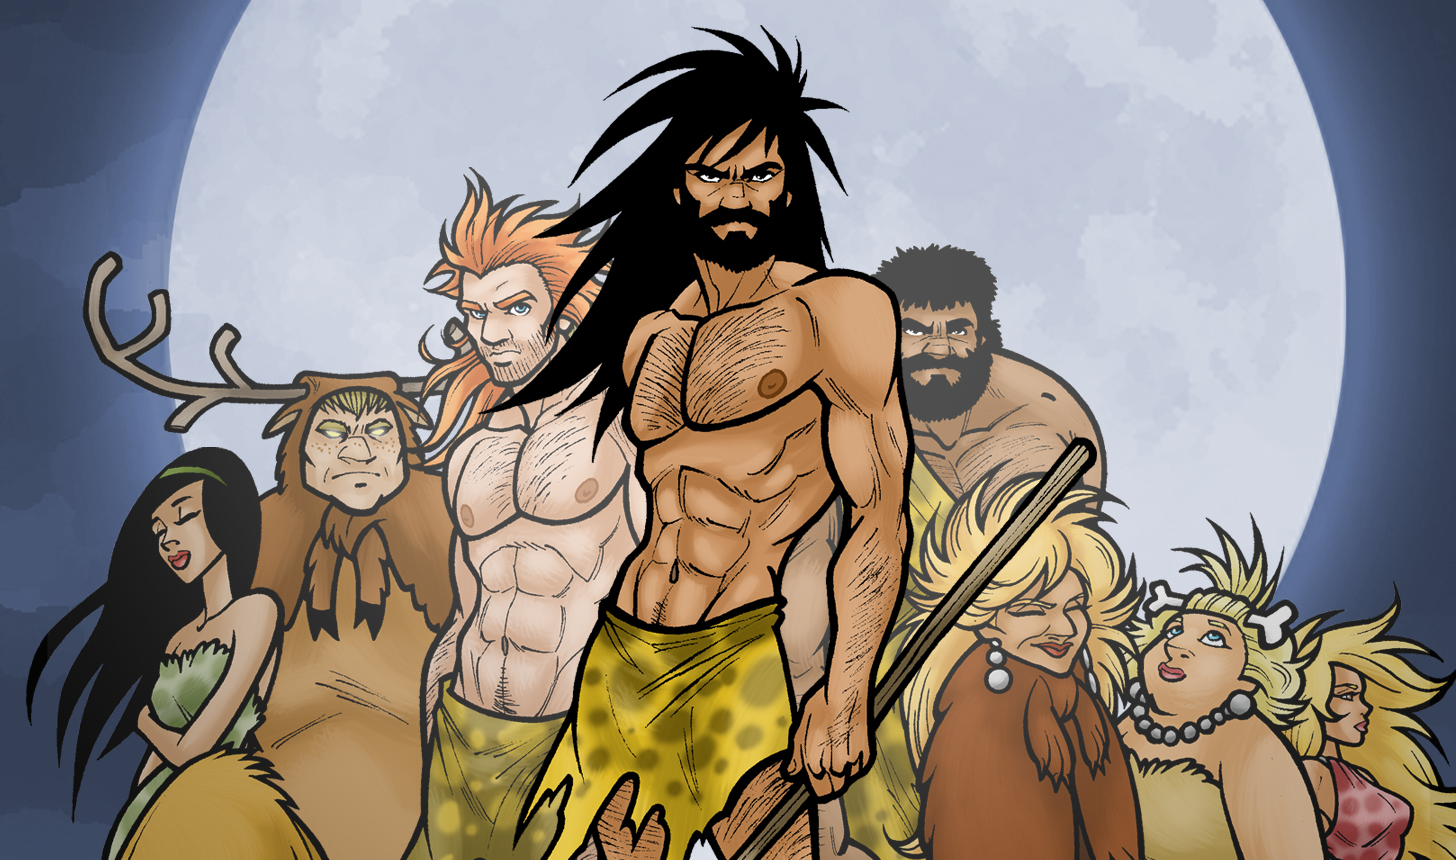 The Cavemen